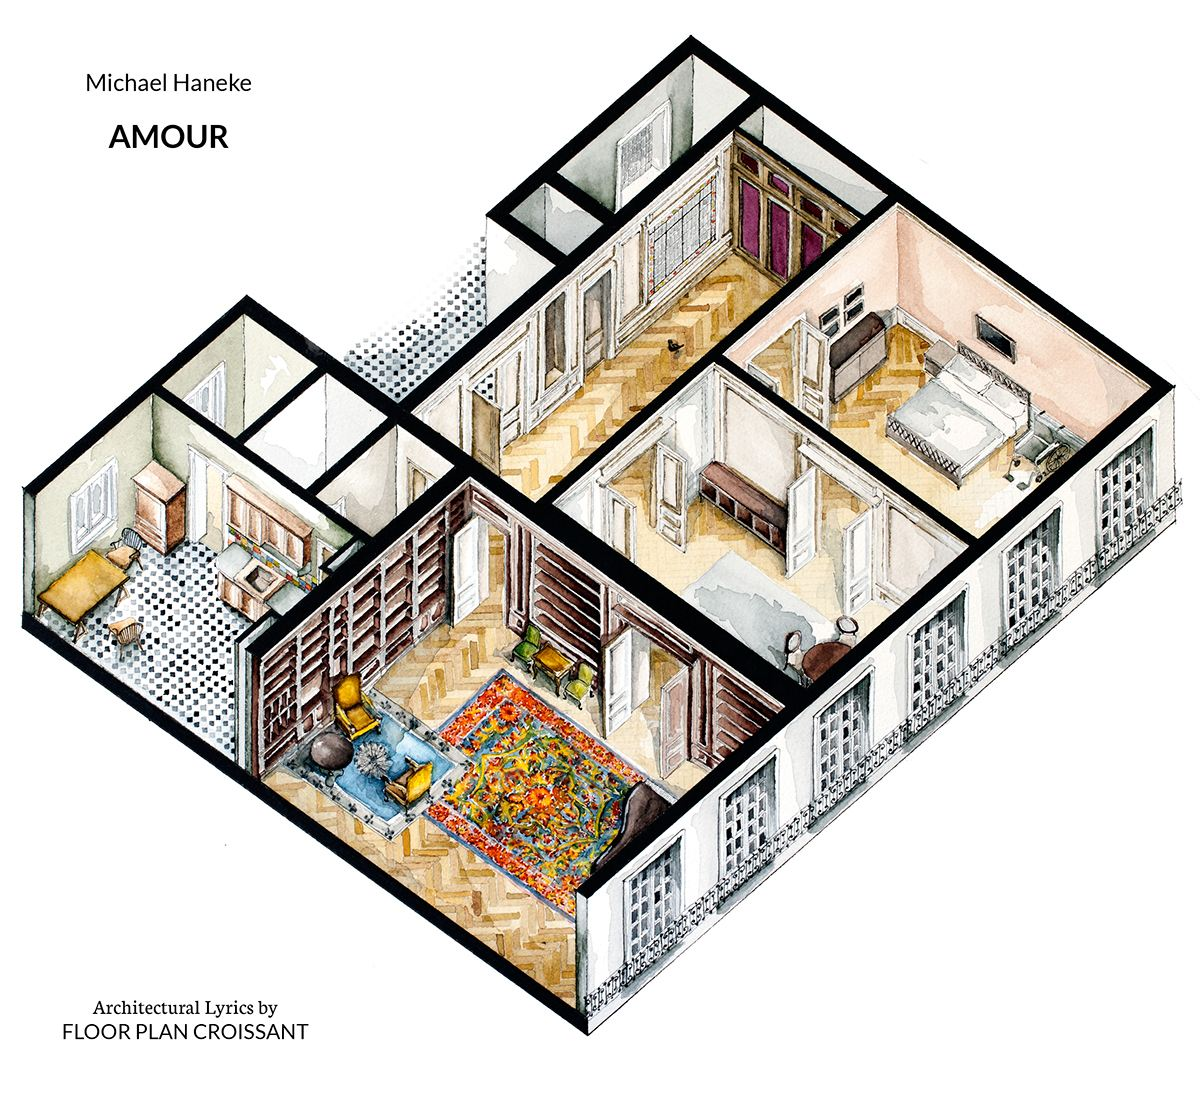 Floor Plans From Movies - Watercolor floorplans from recent television shows and films